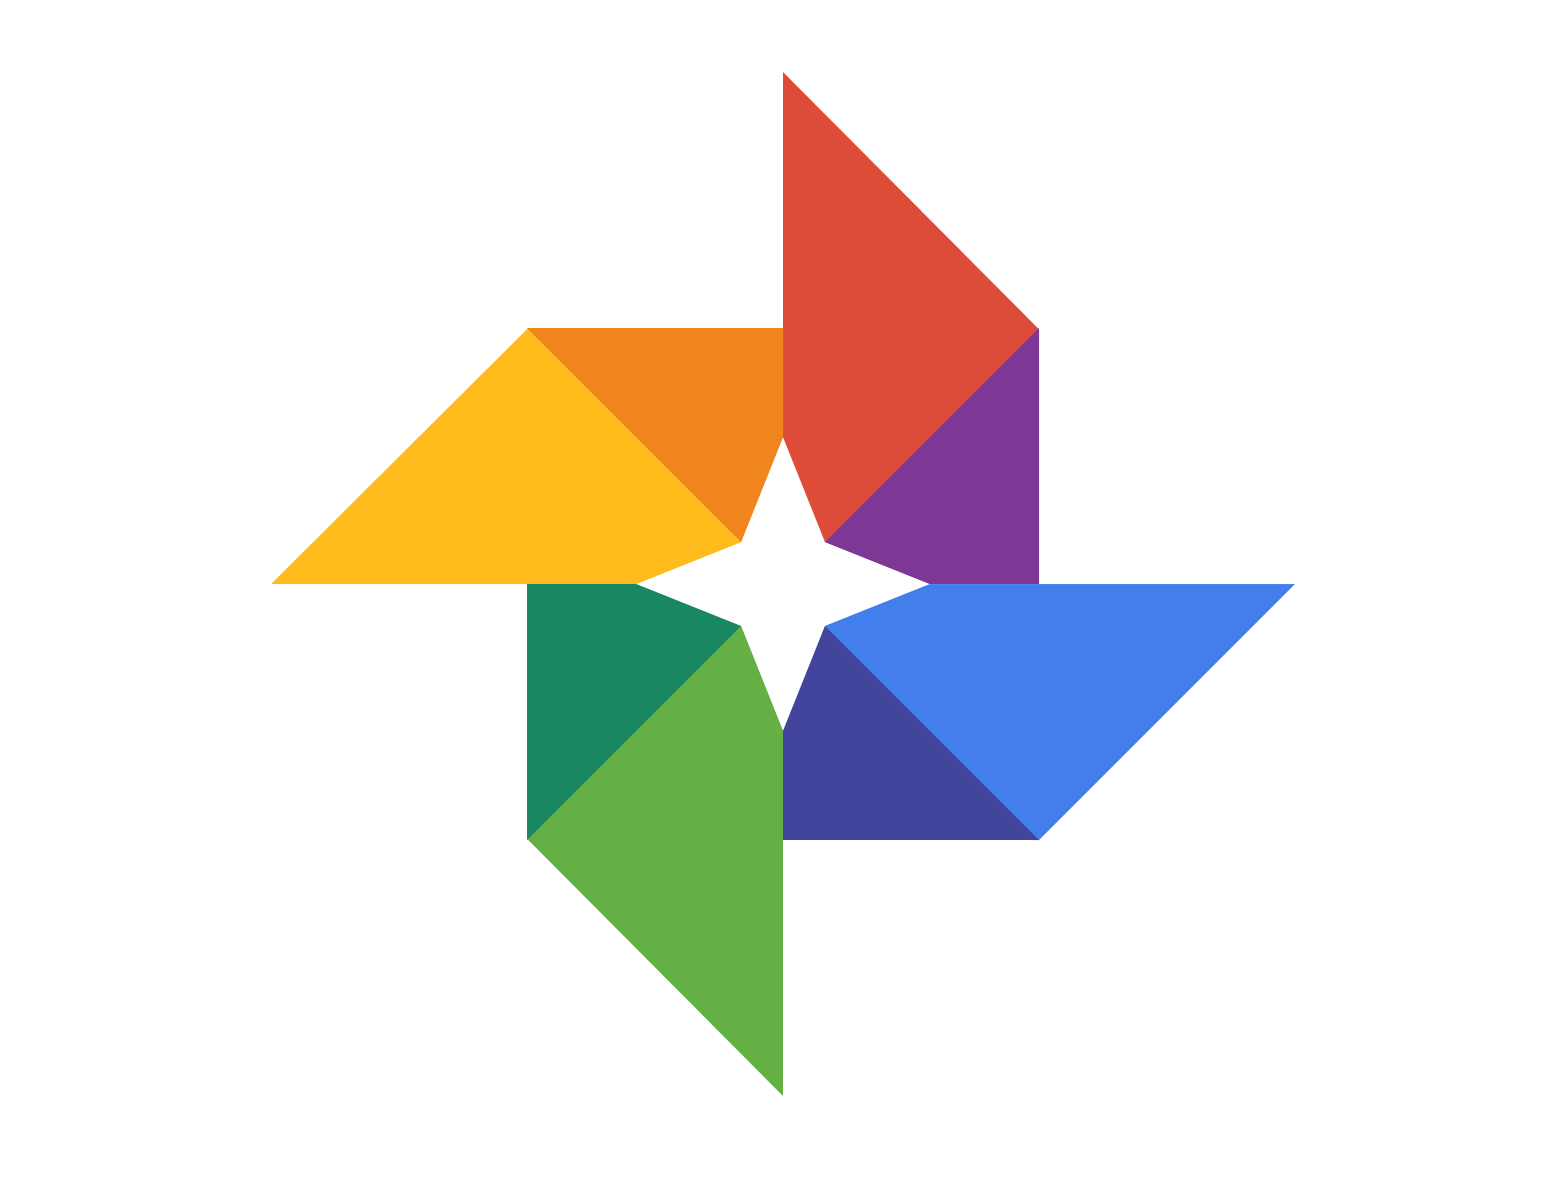 everything about Google photos